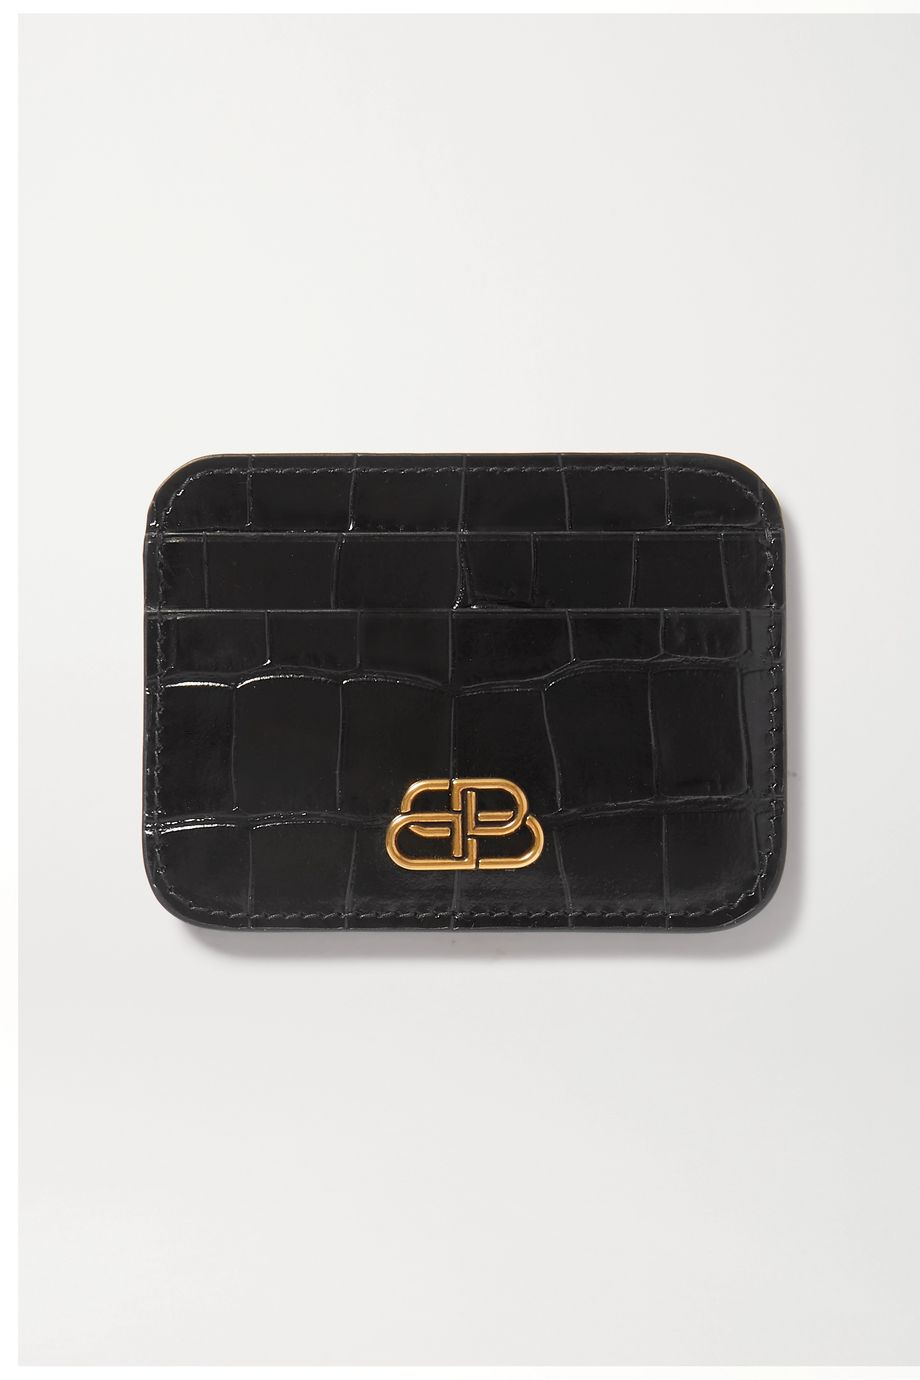 Balenciaga BB croc-effect leather cardholder